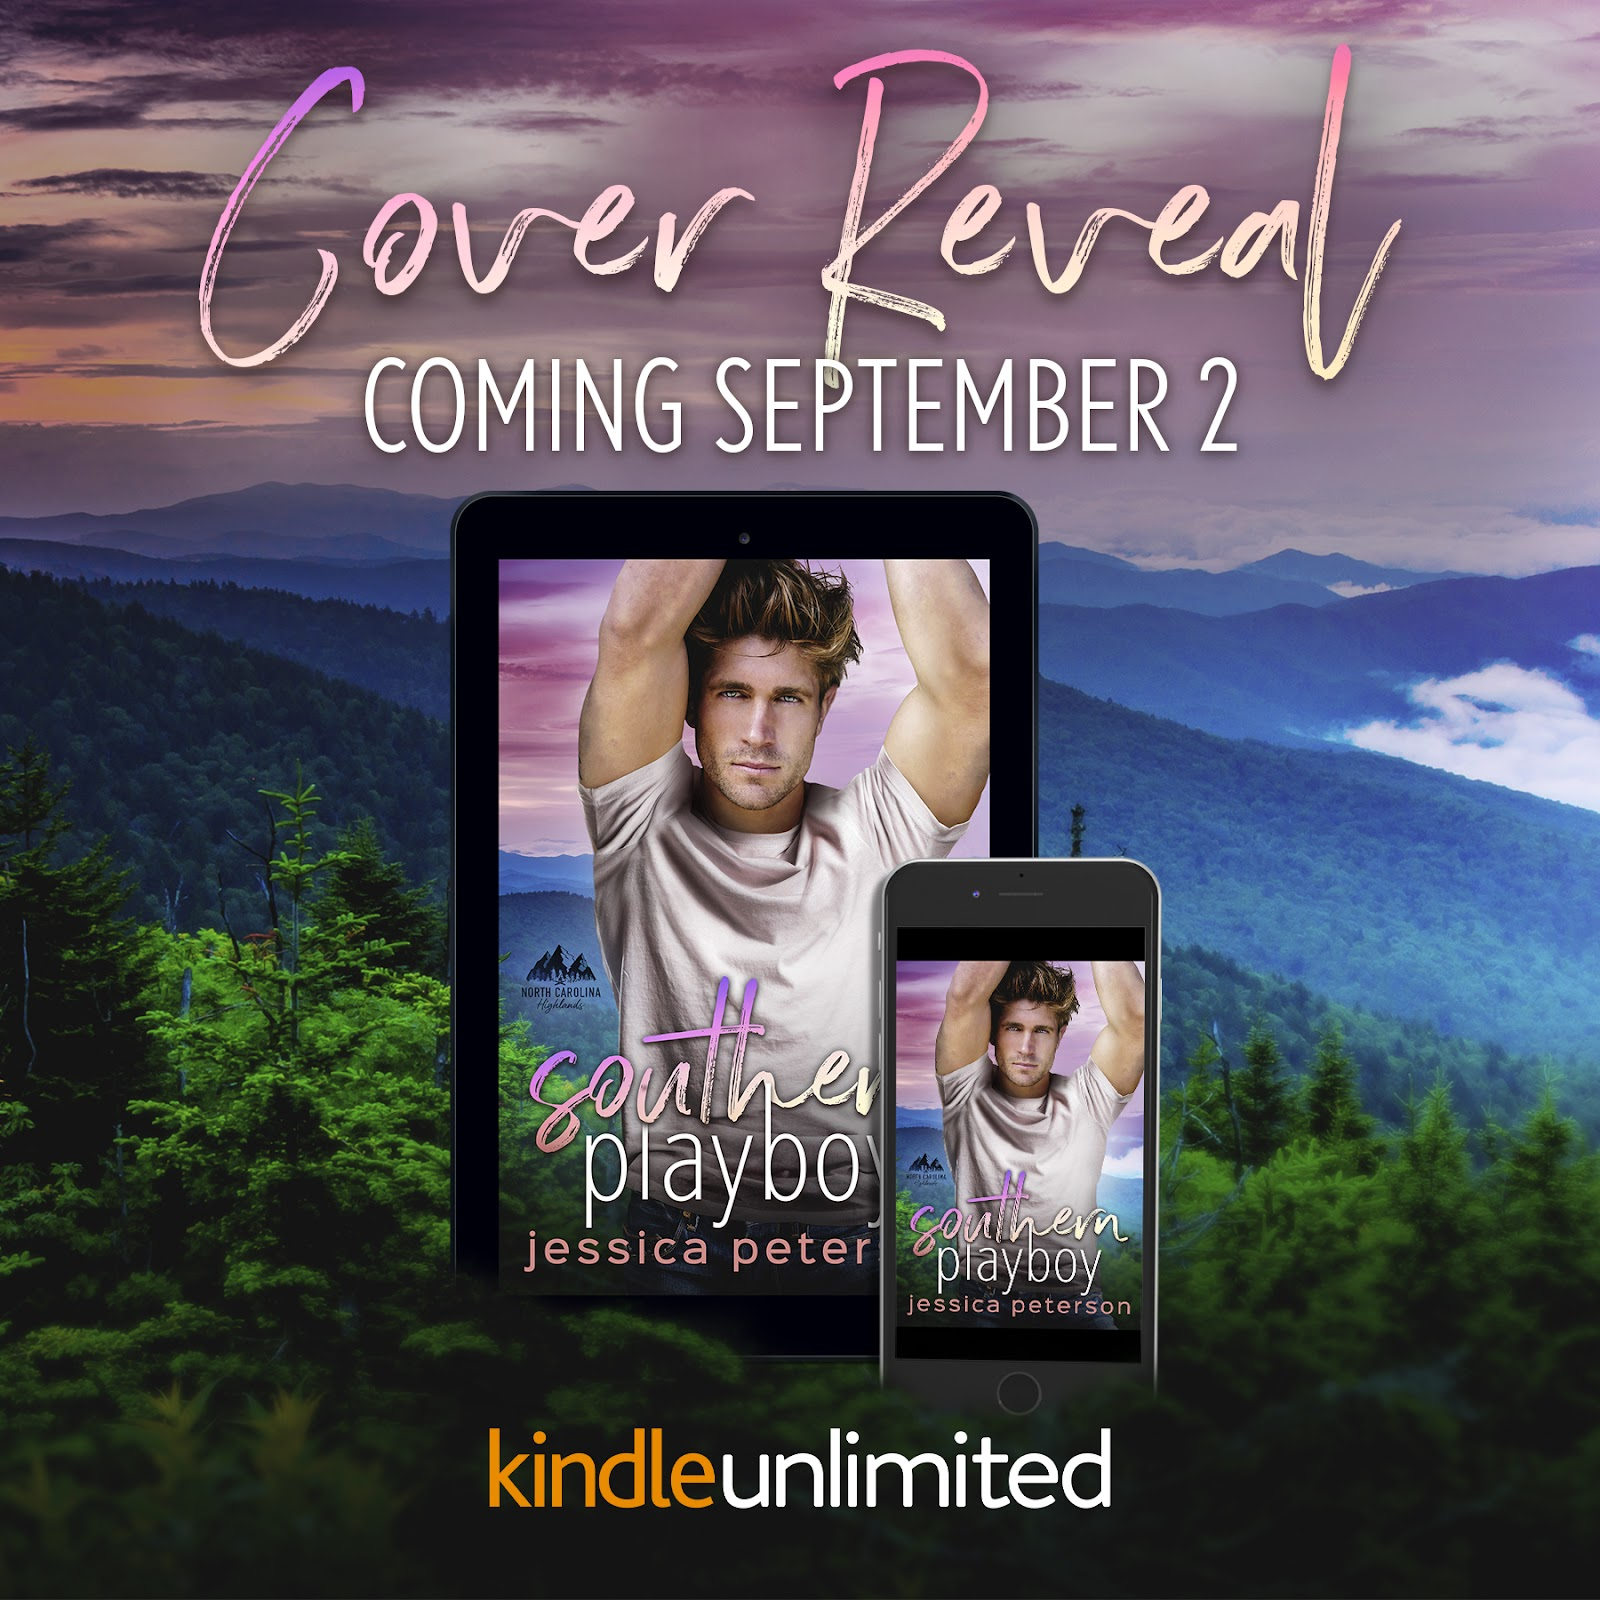 Southern Playboy by Jessica Peterson coming September 2